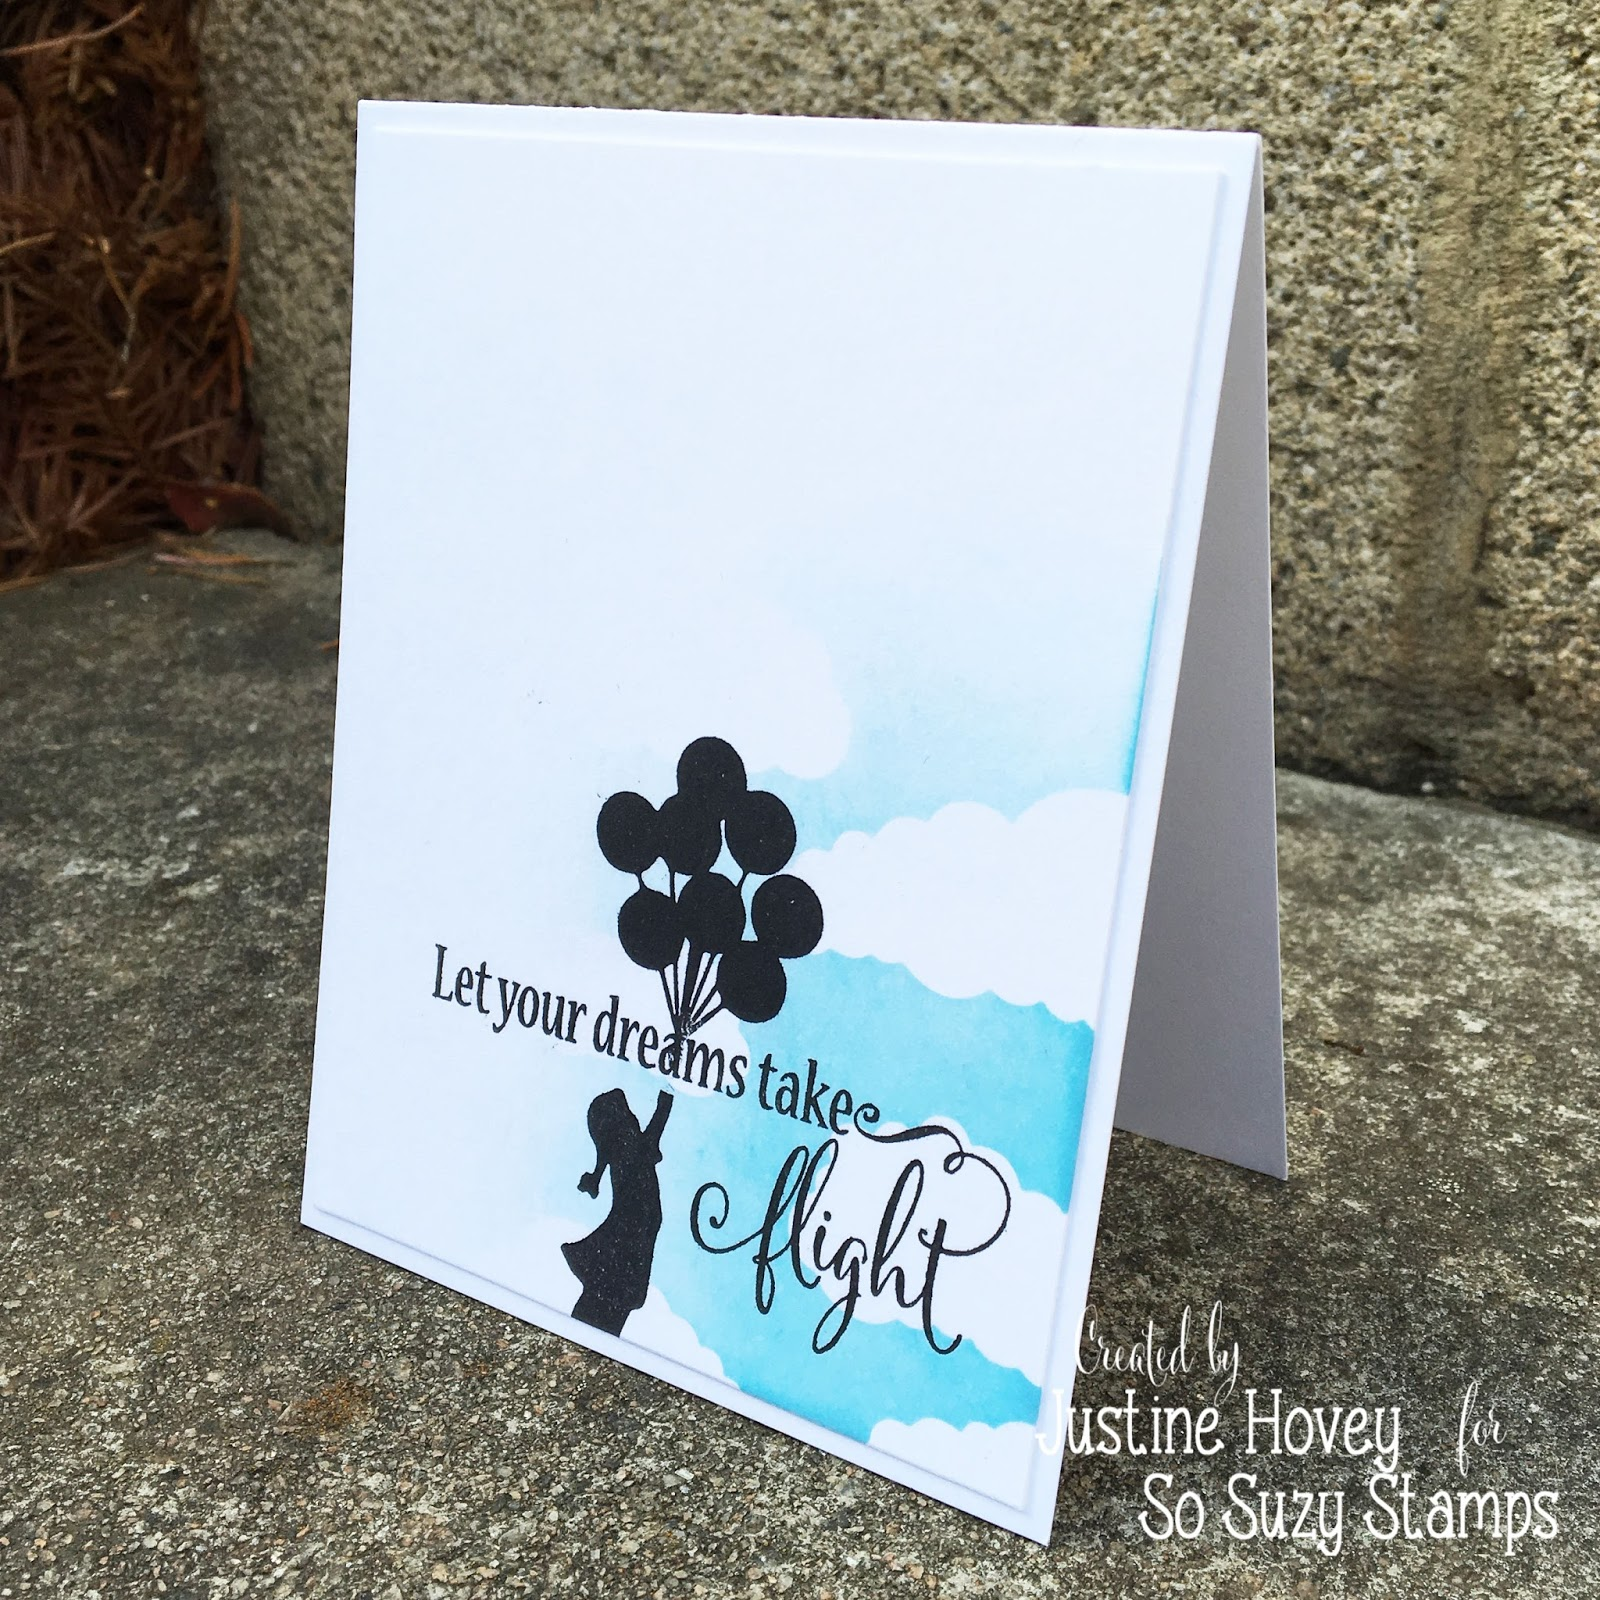 justine u0026 39 s cardmaking  quick and easy cards episode  5